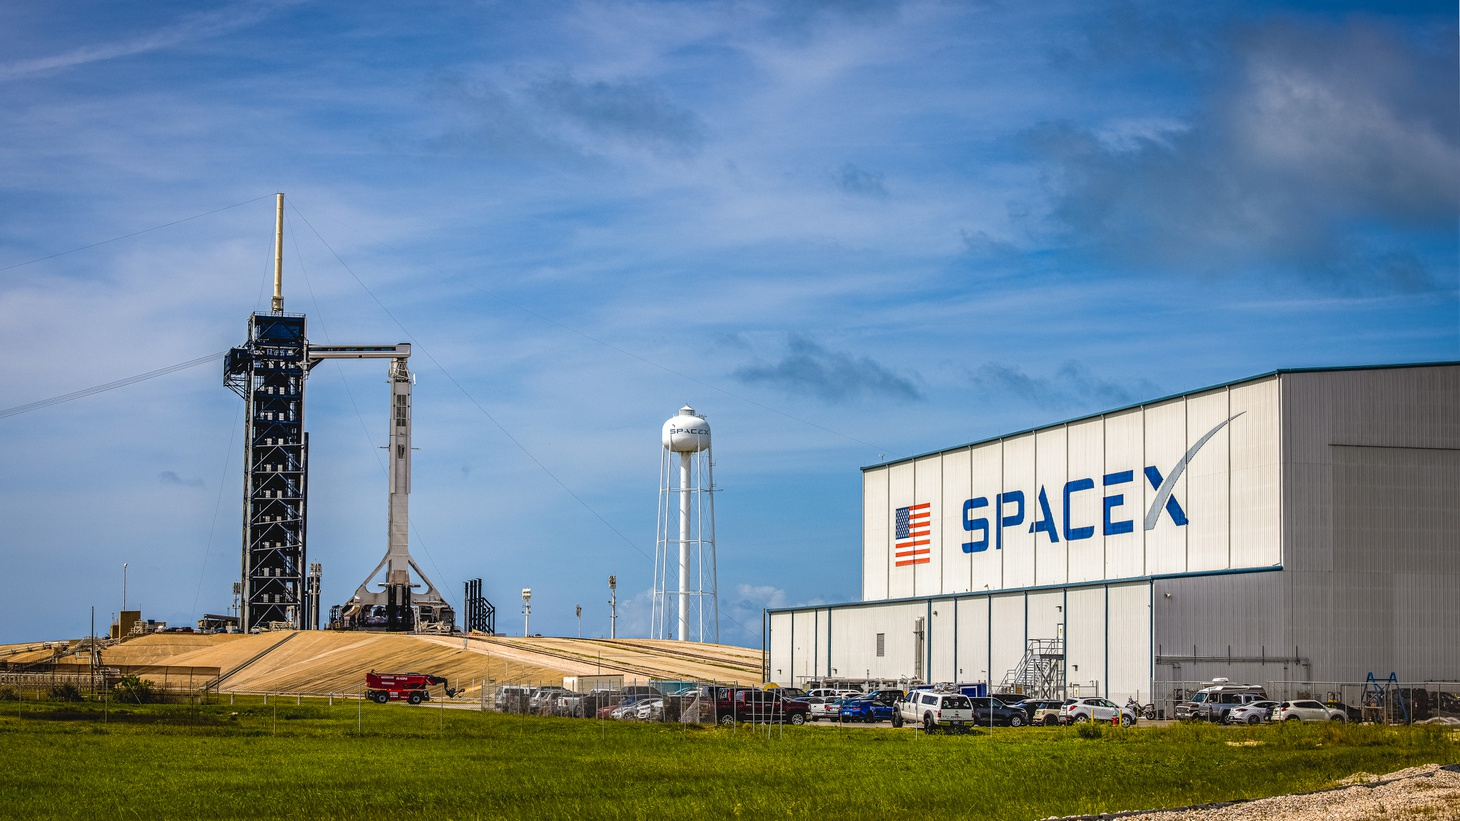 A SpaceX logo can be seen on a building at NASA's Kennedy Space Center in Florida, June 2, 2021.